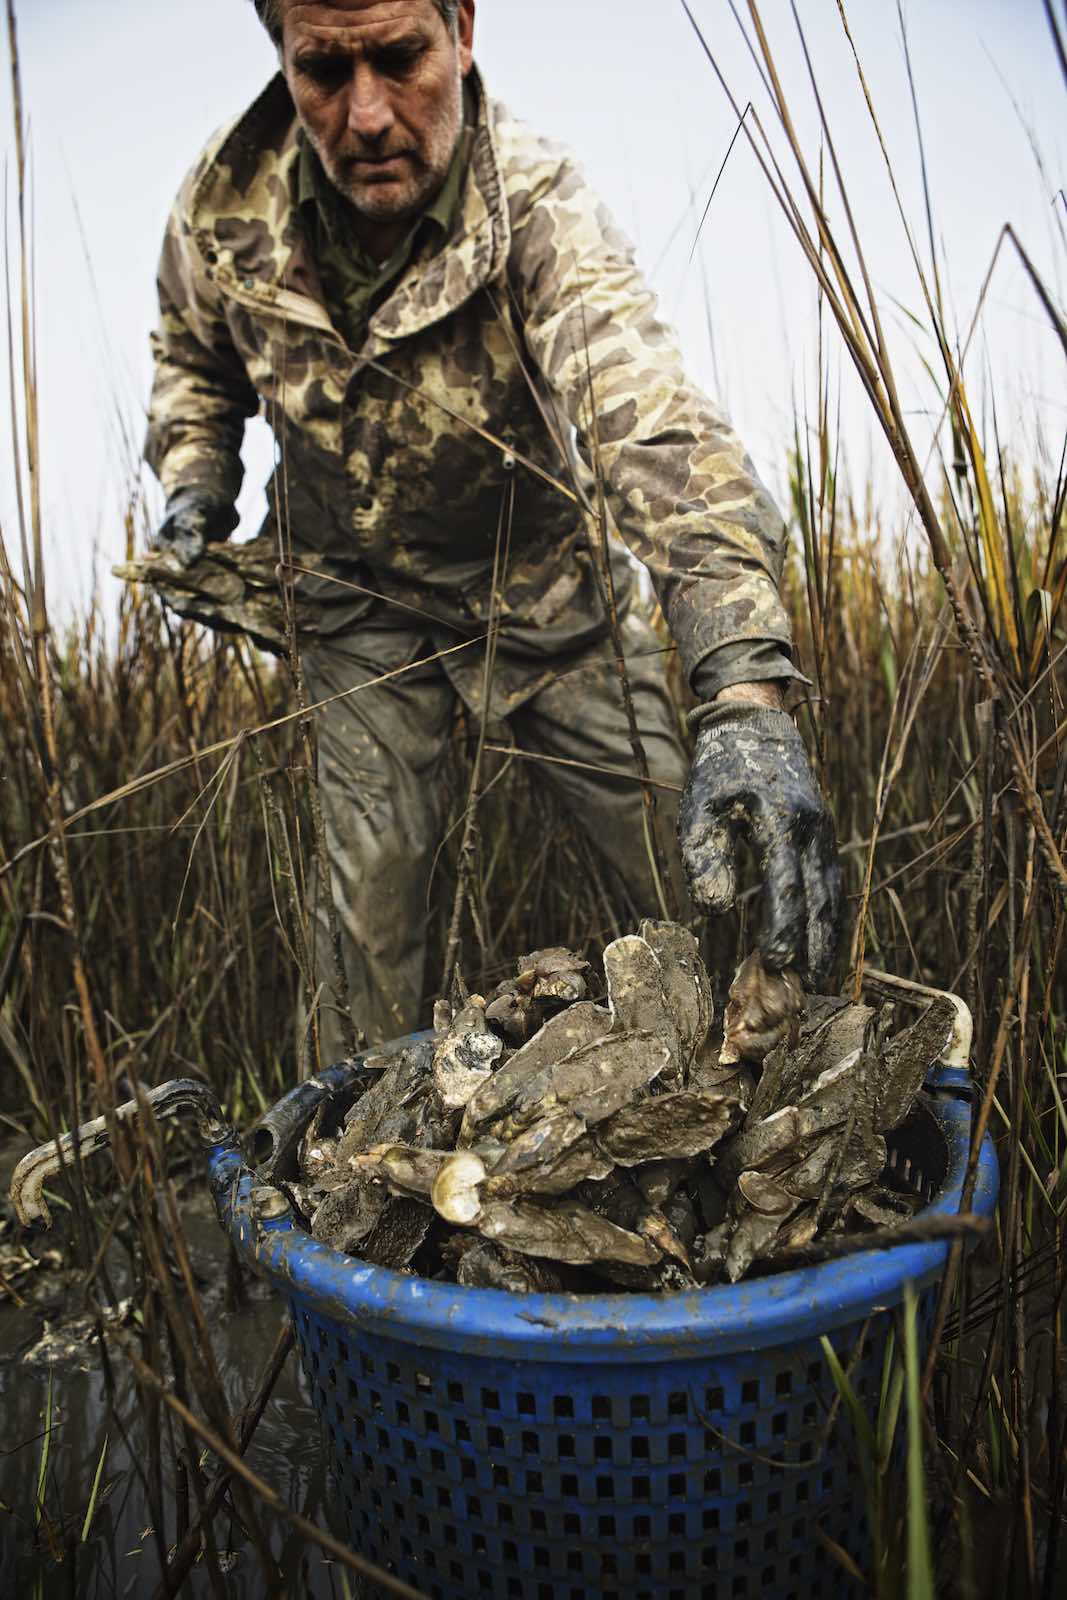 Jody Horton Photography - Fisherman stacking fresh caught oysters in a bucket.